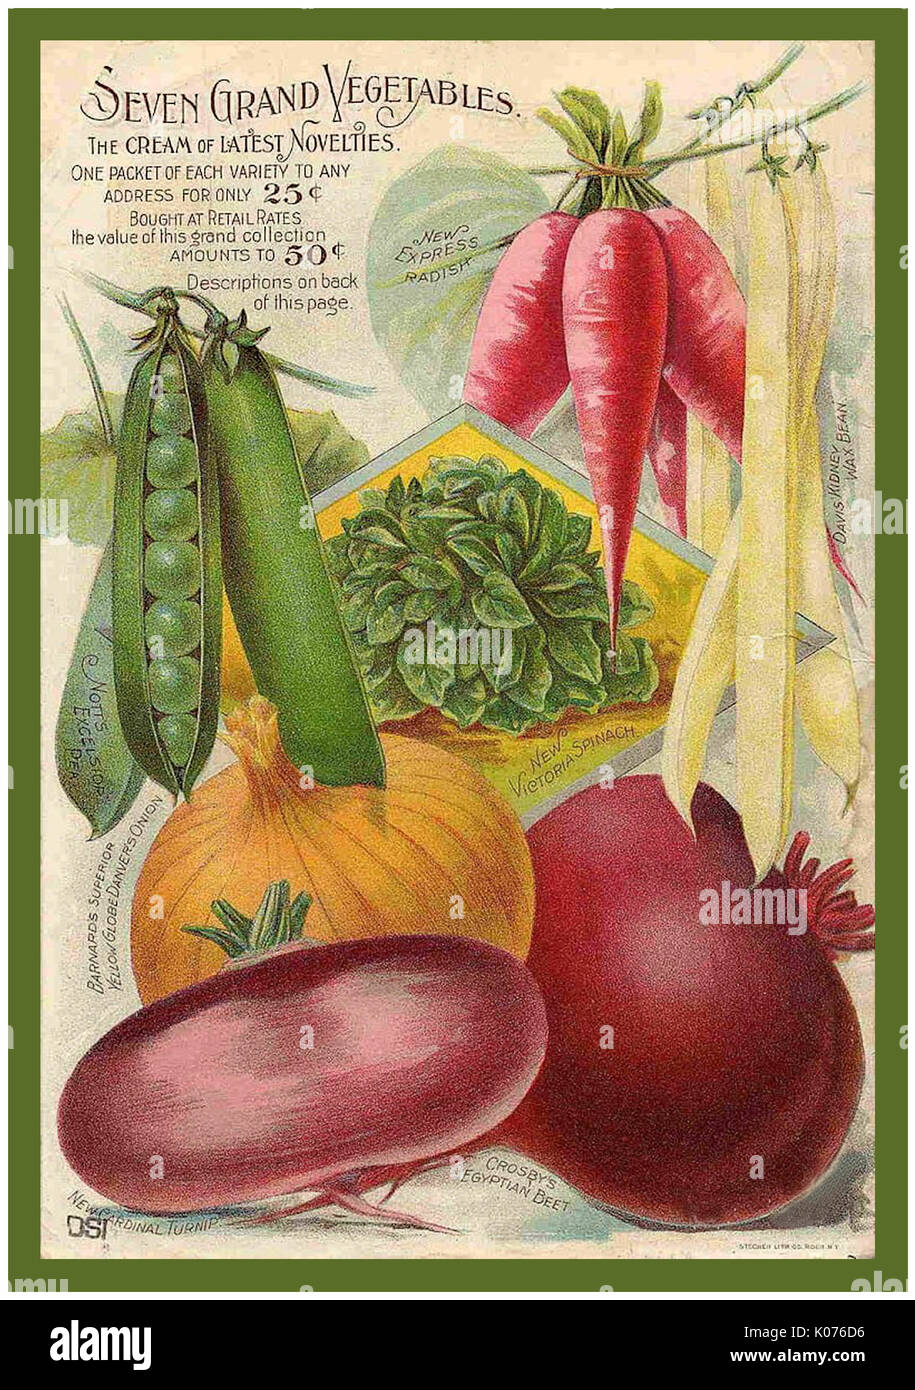 Buist/'s Tomato Vintage Vegetables Seed Packet Catalogue Advertisement Poster